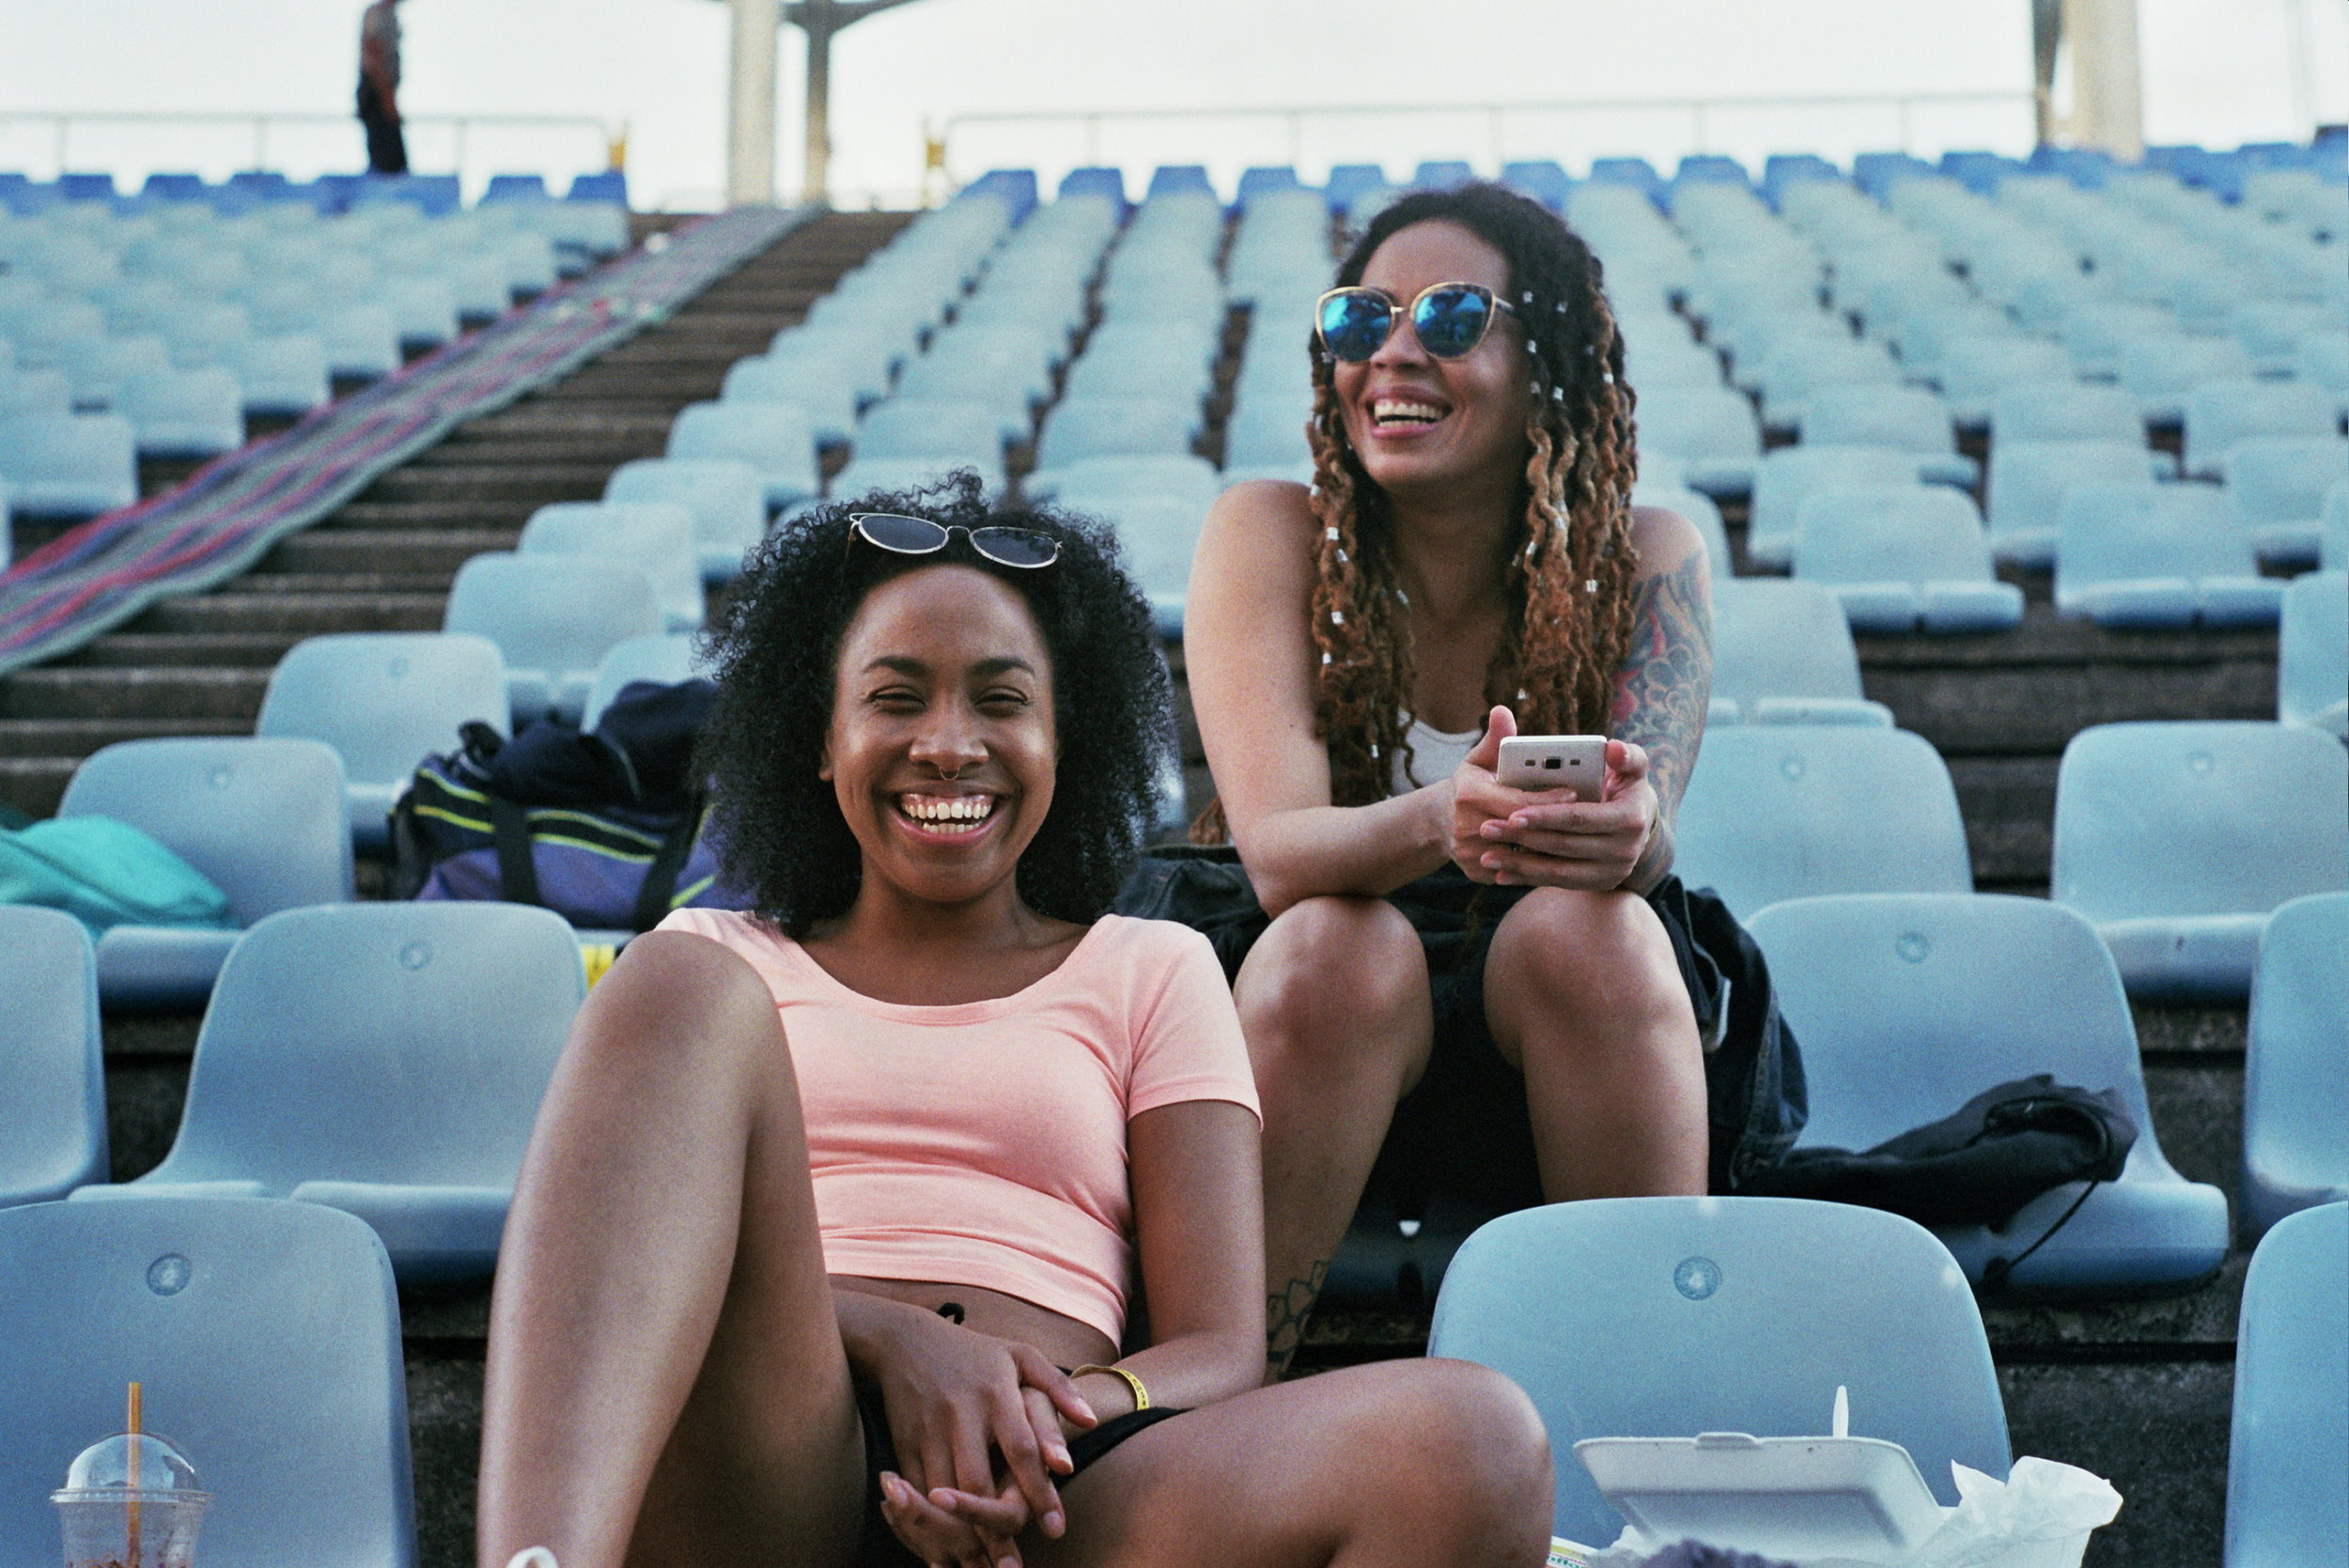 Arielle and Rhea waiting for rehearsal for Machel Montano's Machel Monday to begin.